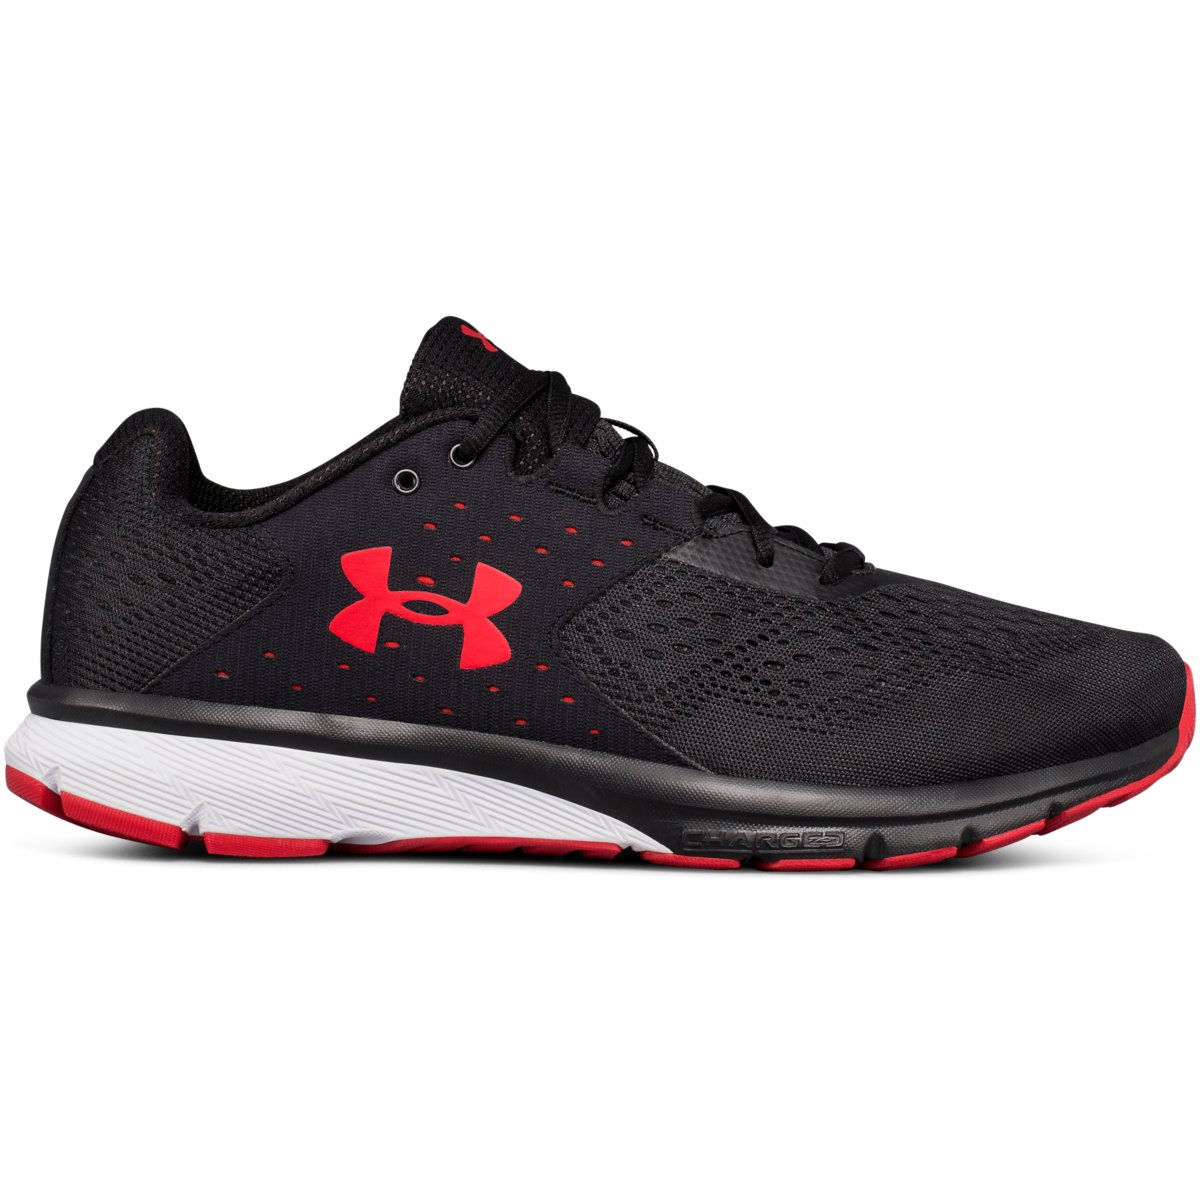 Chaussures de running Under Armour Charged Rebel - UK 13 BLACK